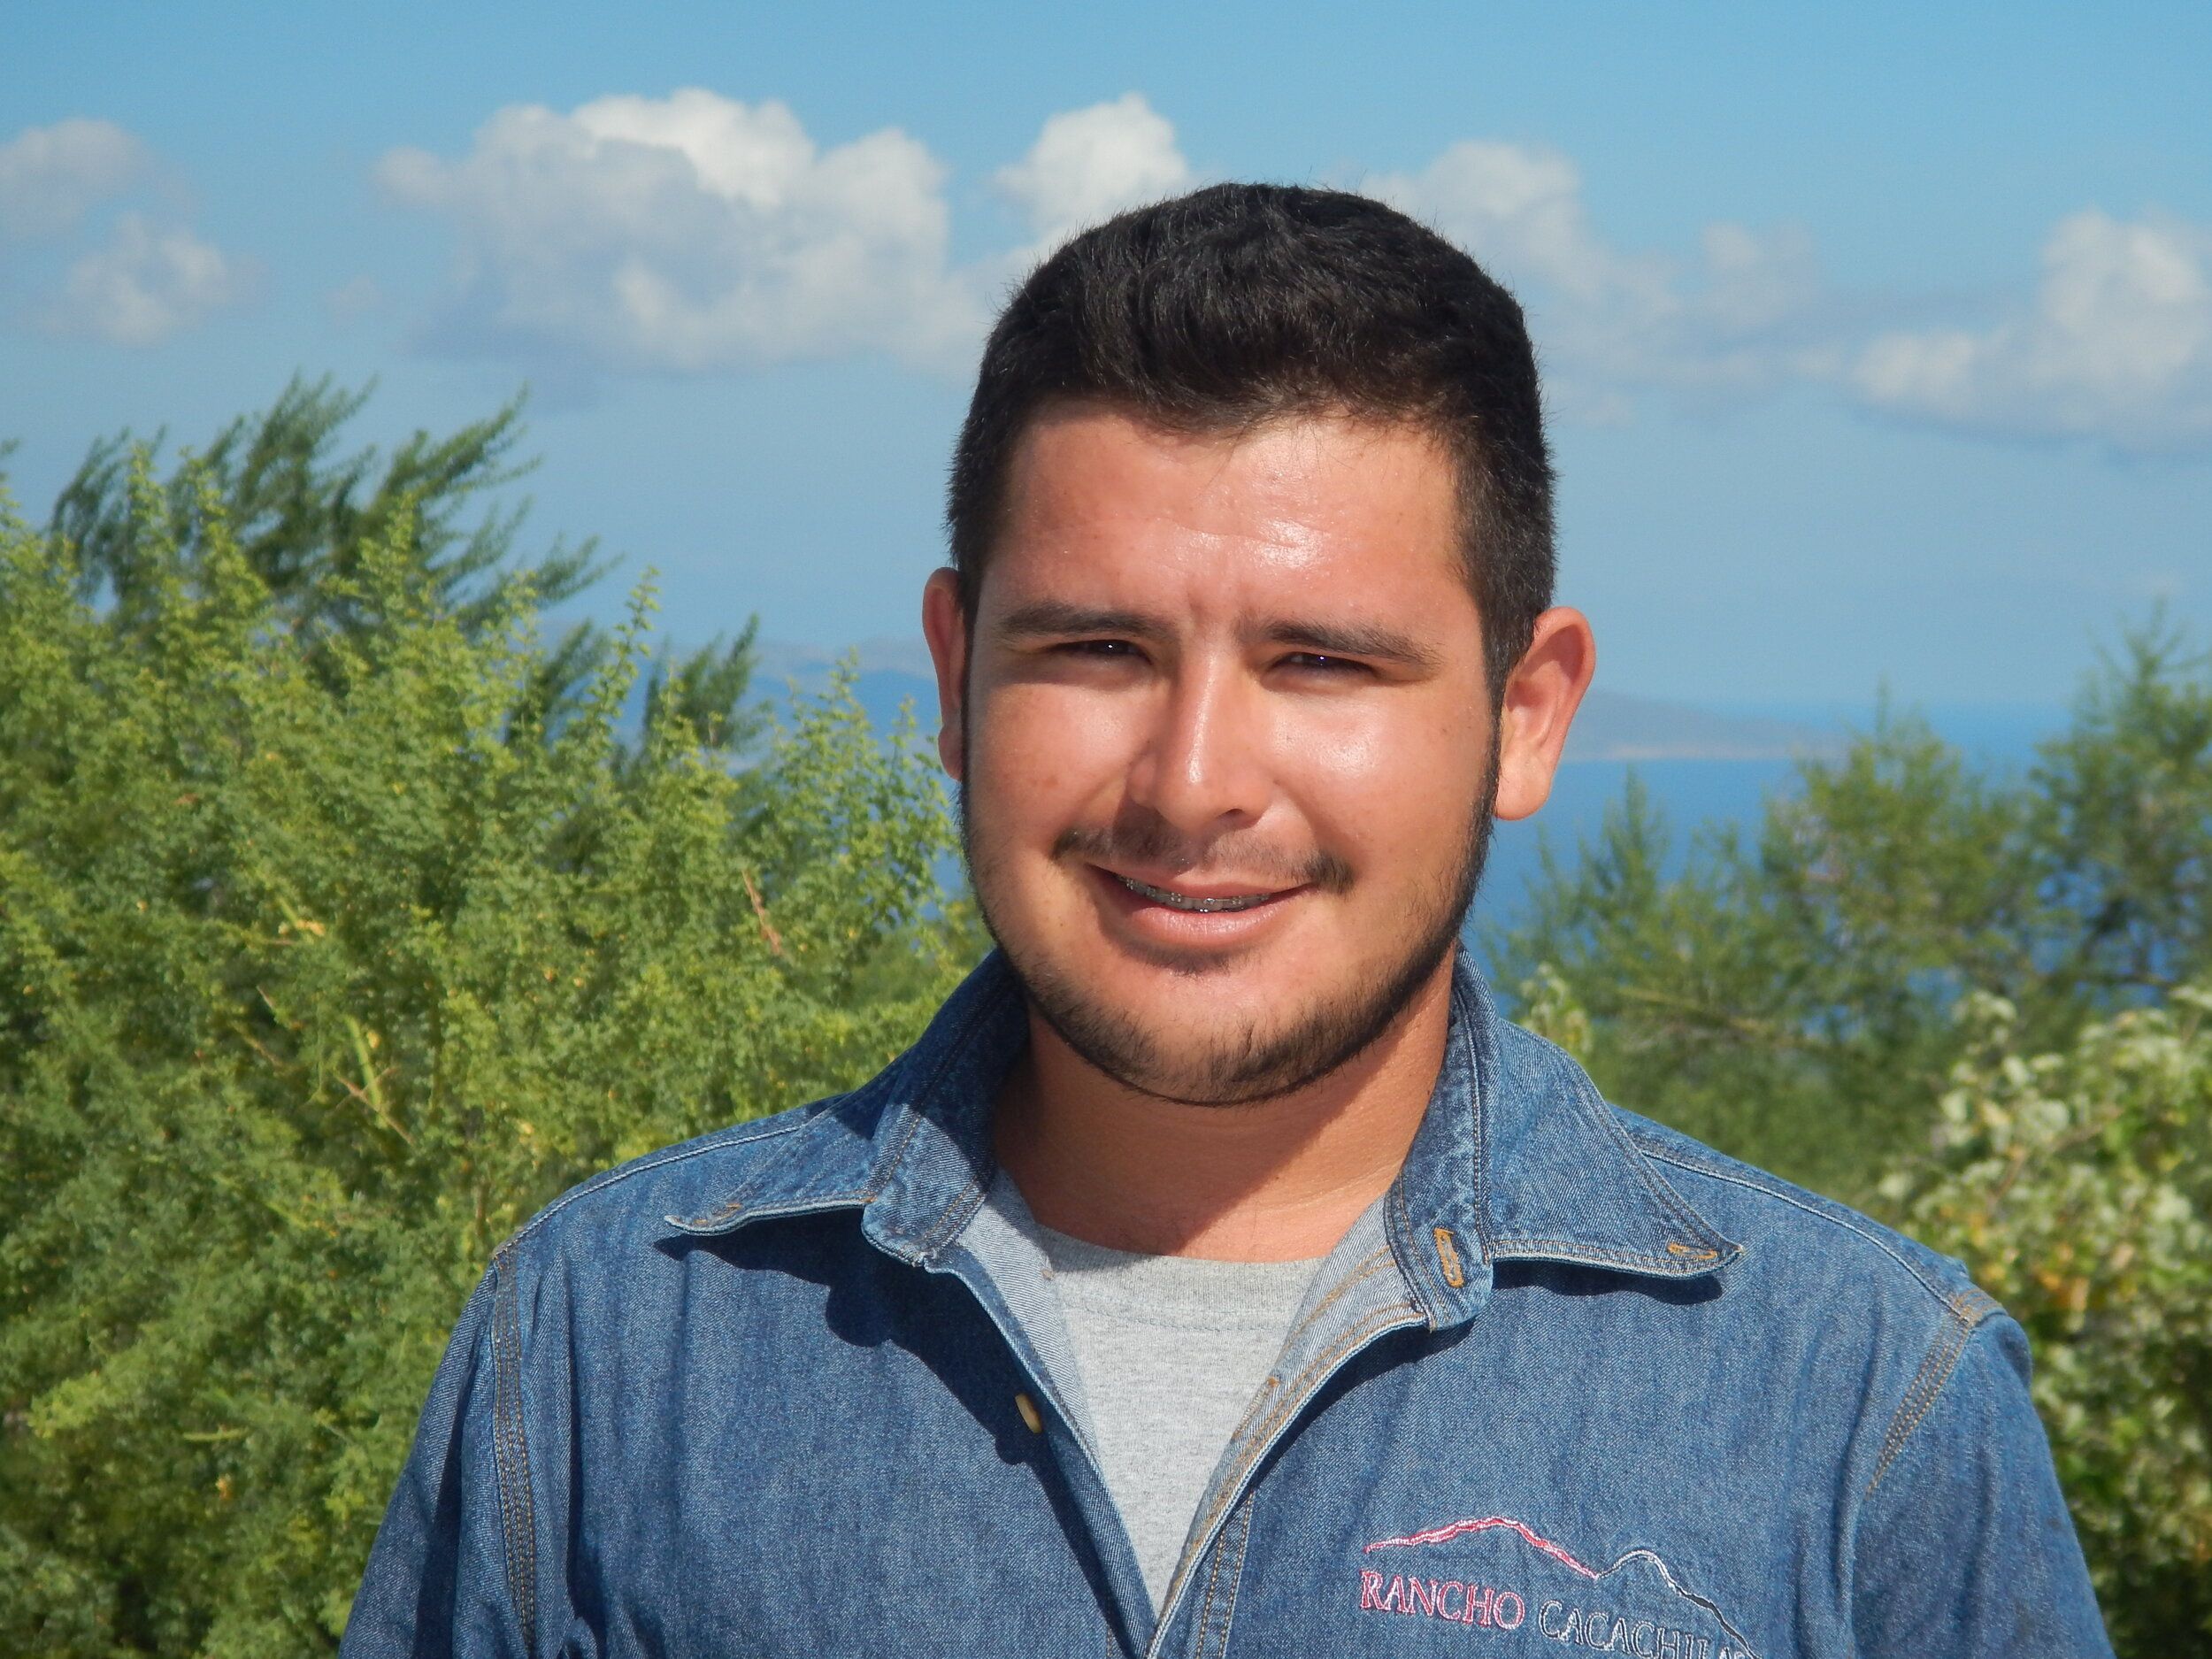 Jorge Lucero   Jorge is a skilled member of the Trail Building team but he also has a talent for helping in the kitchen under the supervision of hospitality team.